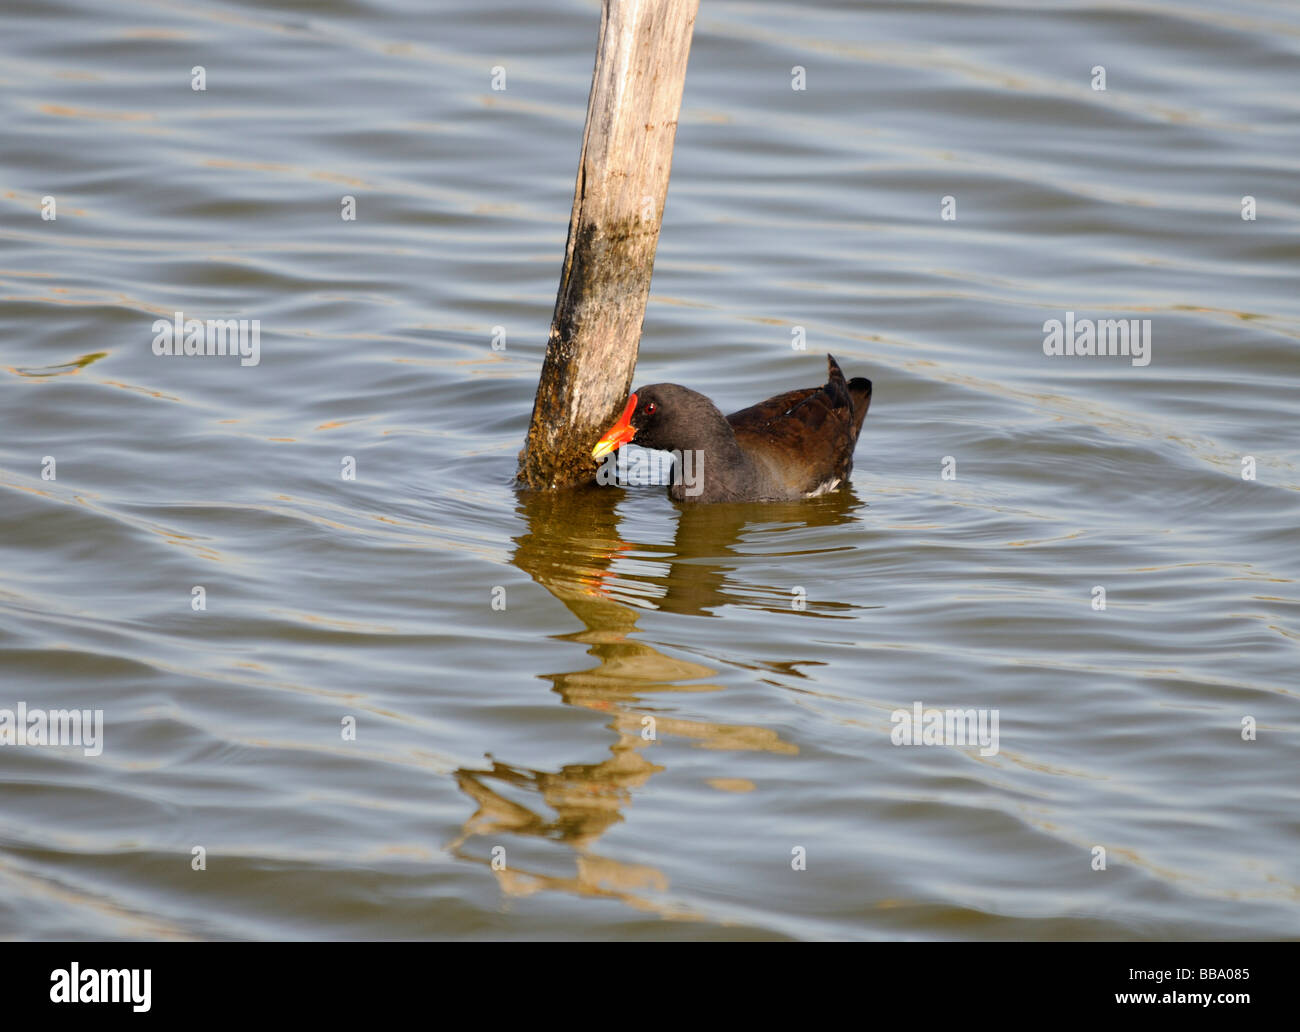 A Moorhen (Gallinula chloropus) feeds on algae growing on a post. - Stock Image